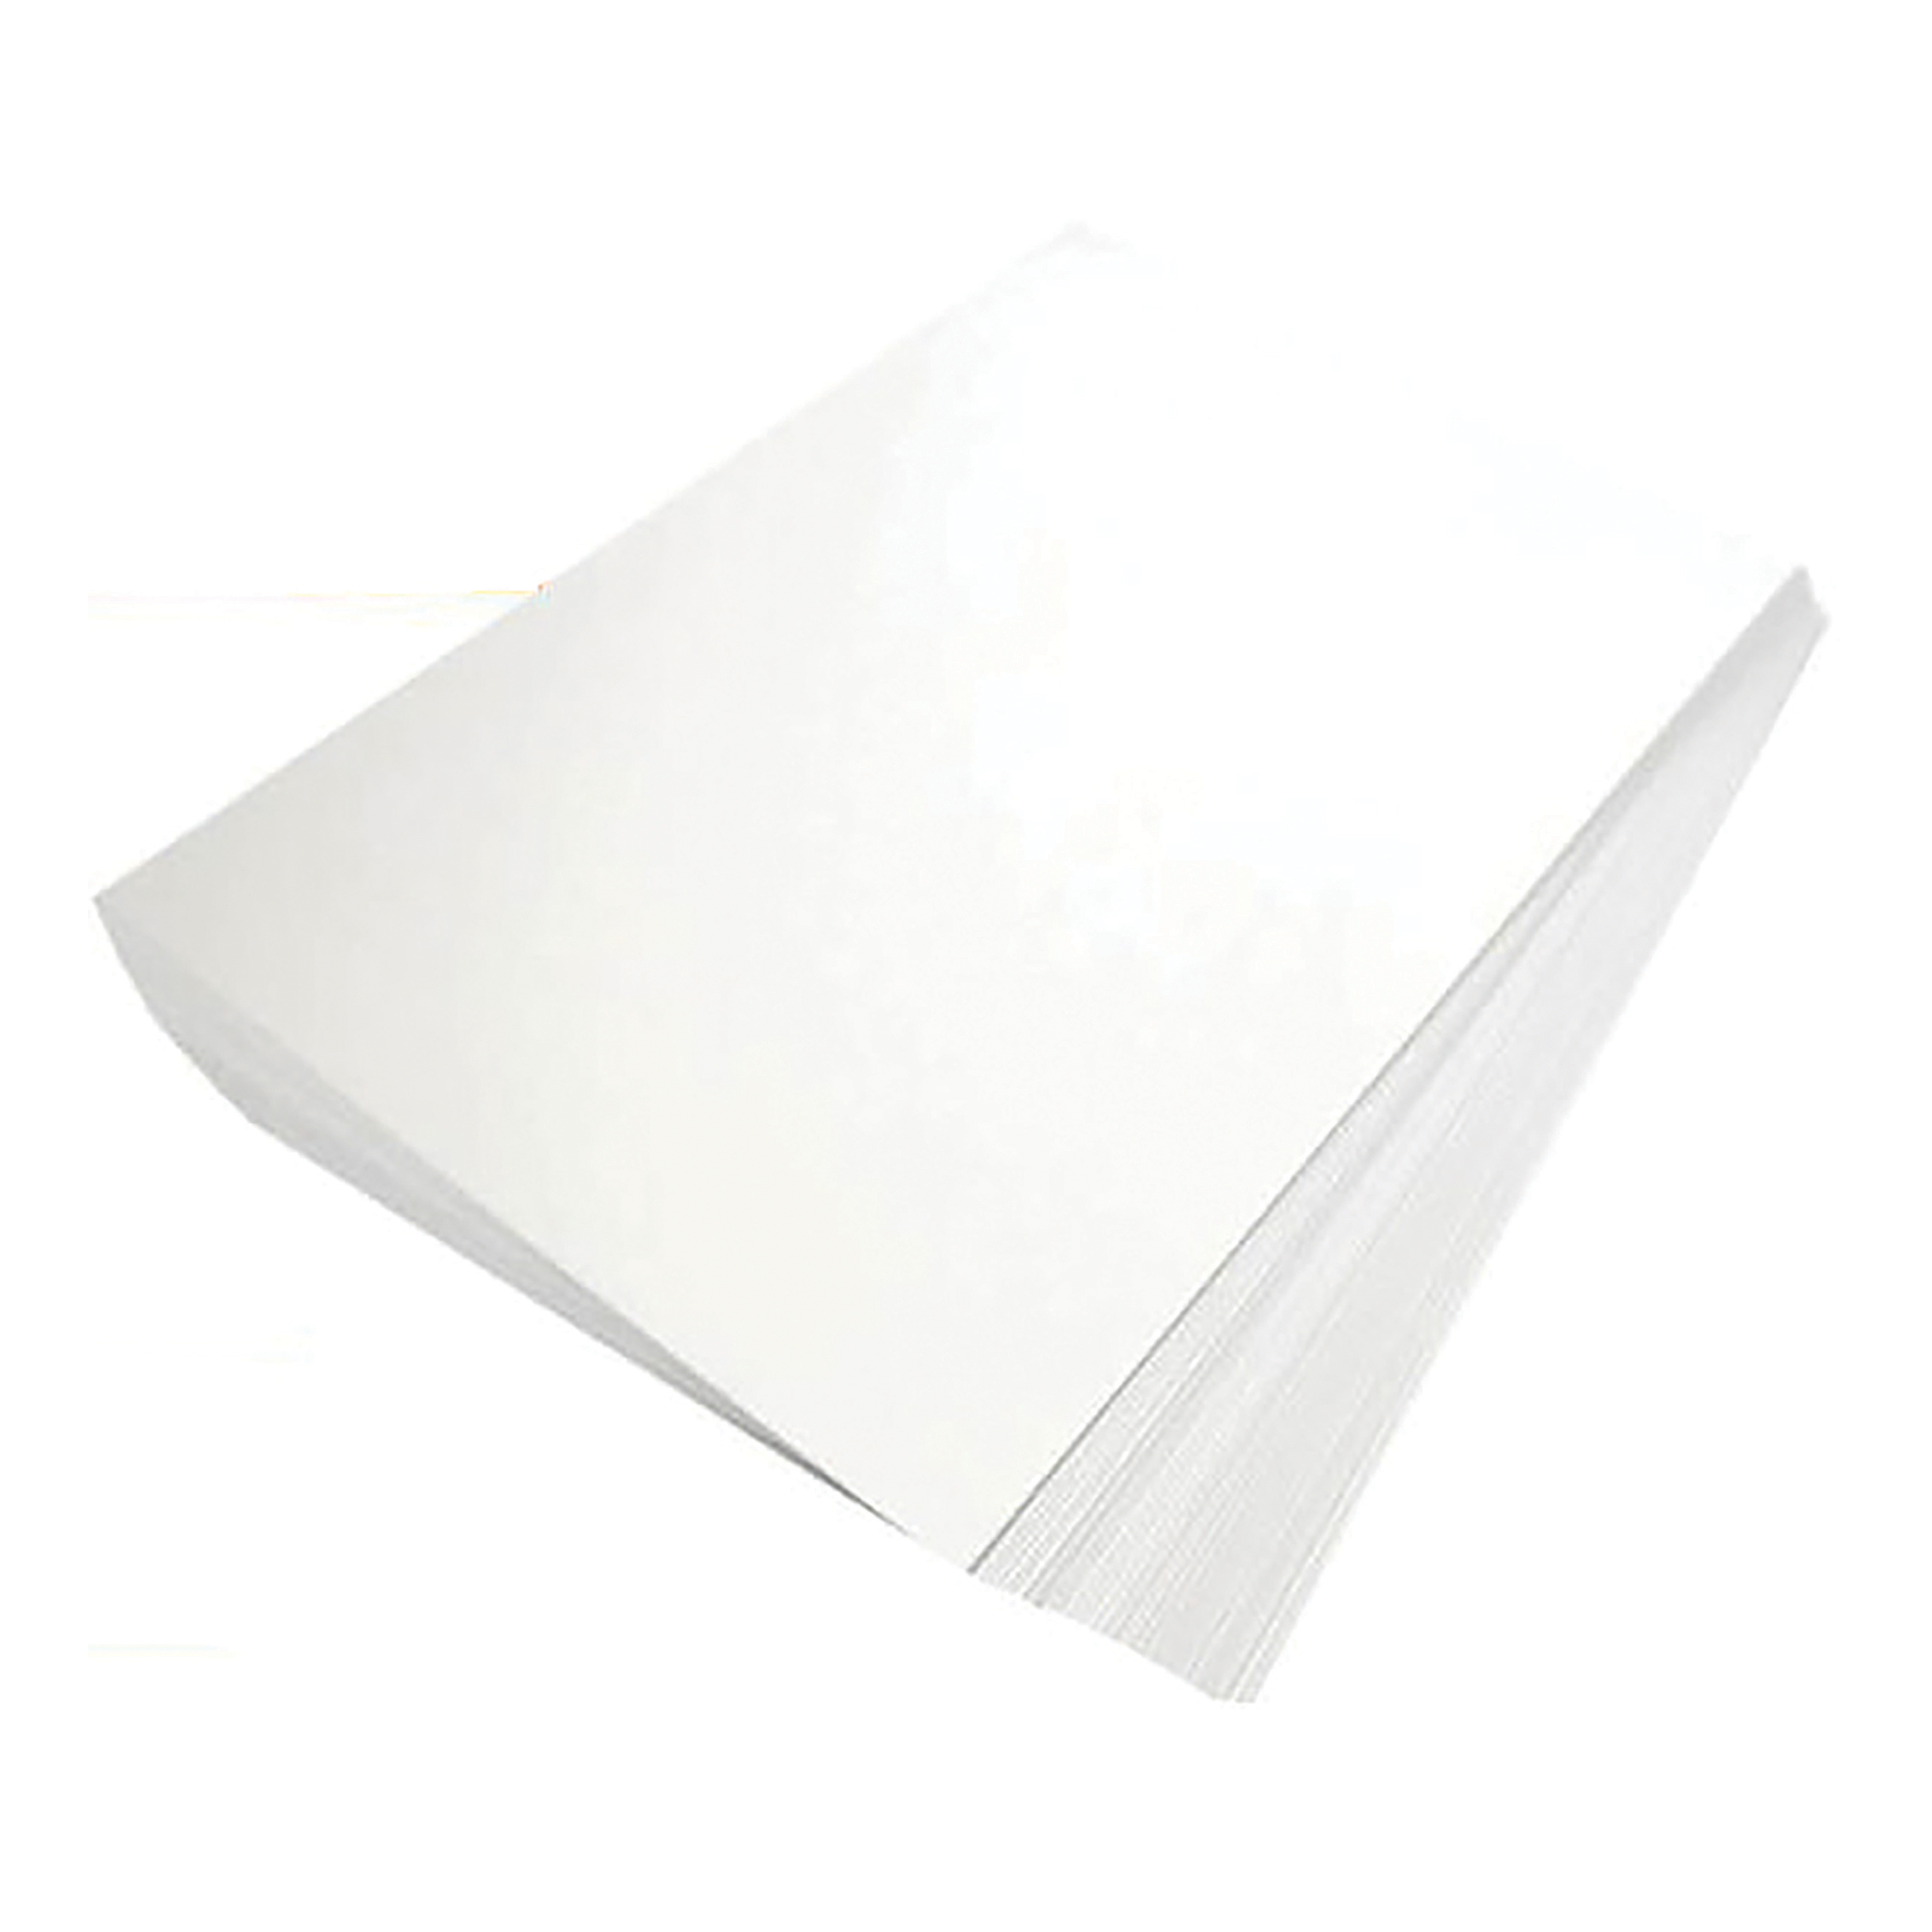 5 Star Elite Premium Business Paper Wove Finish Ream-Wrapped 100gsm A4 Vellum 500 Sheets